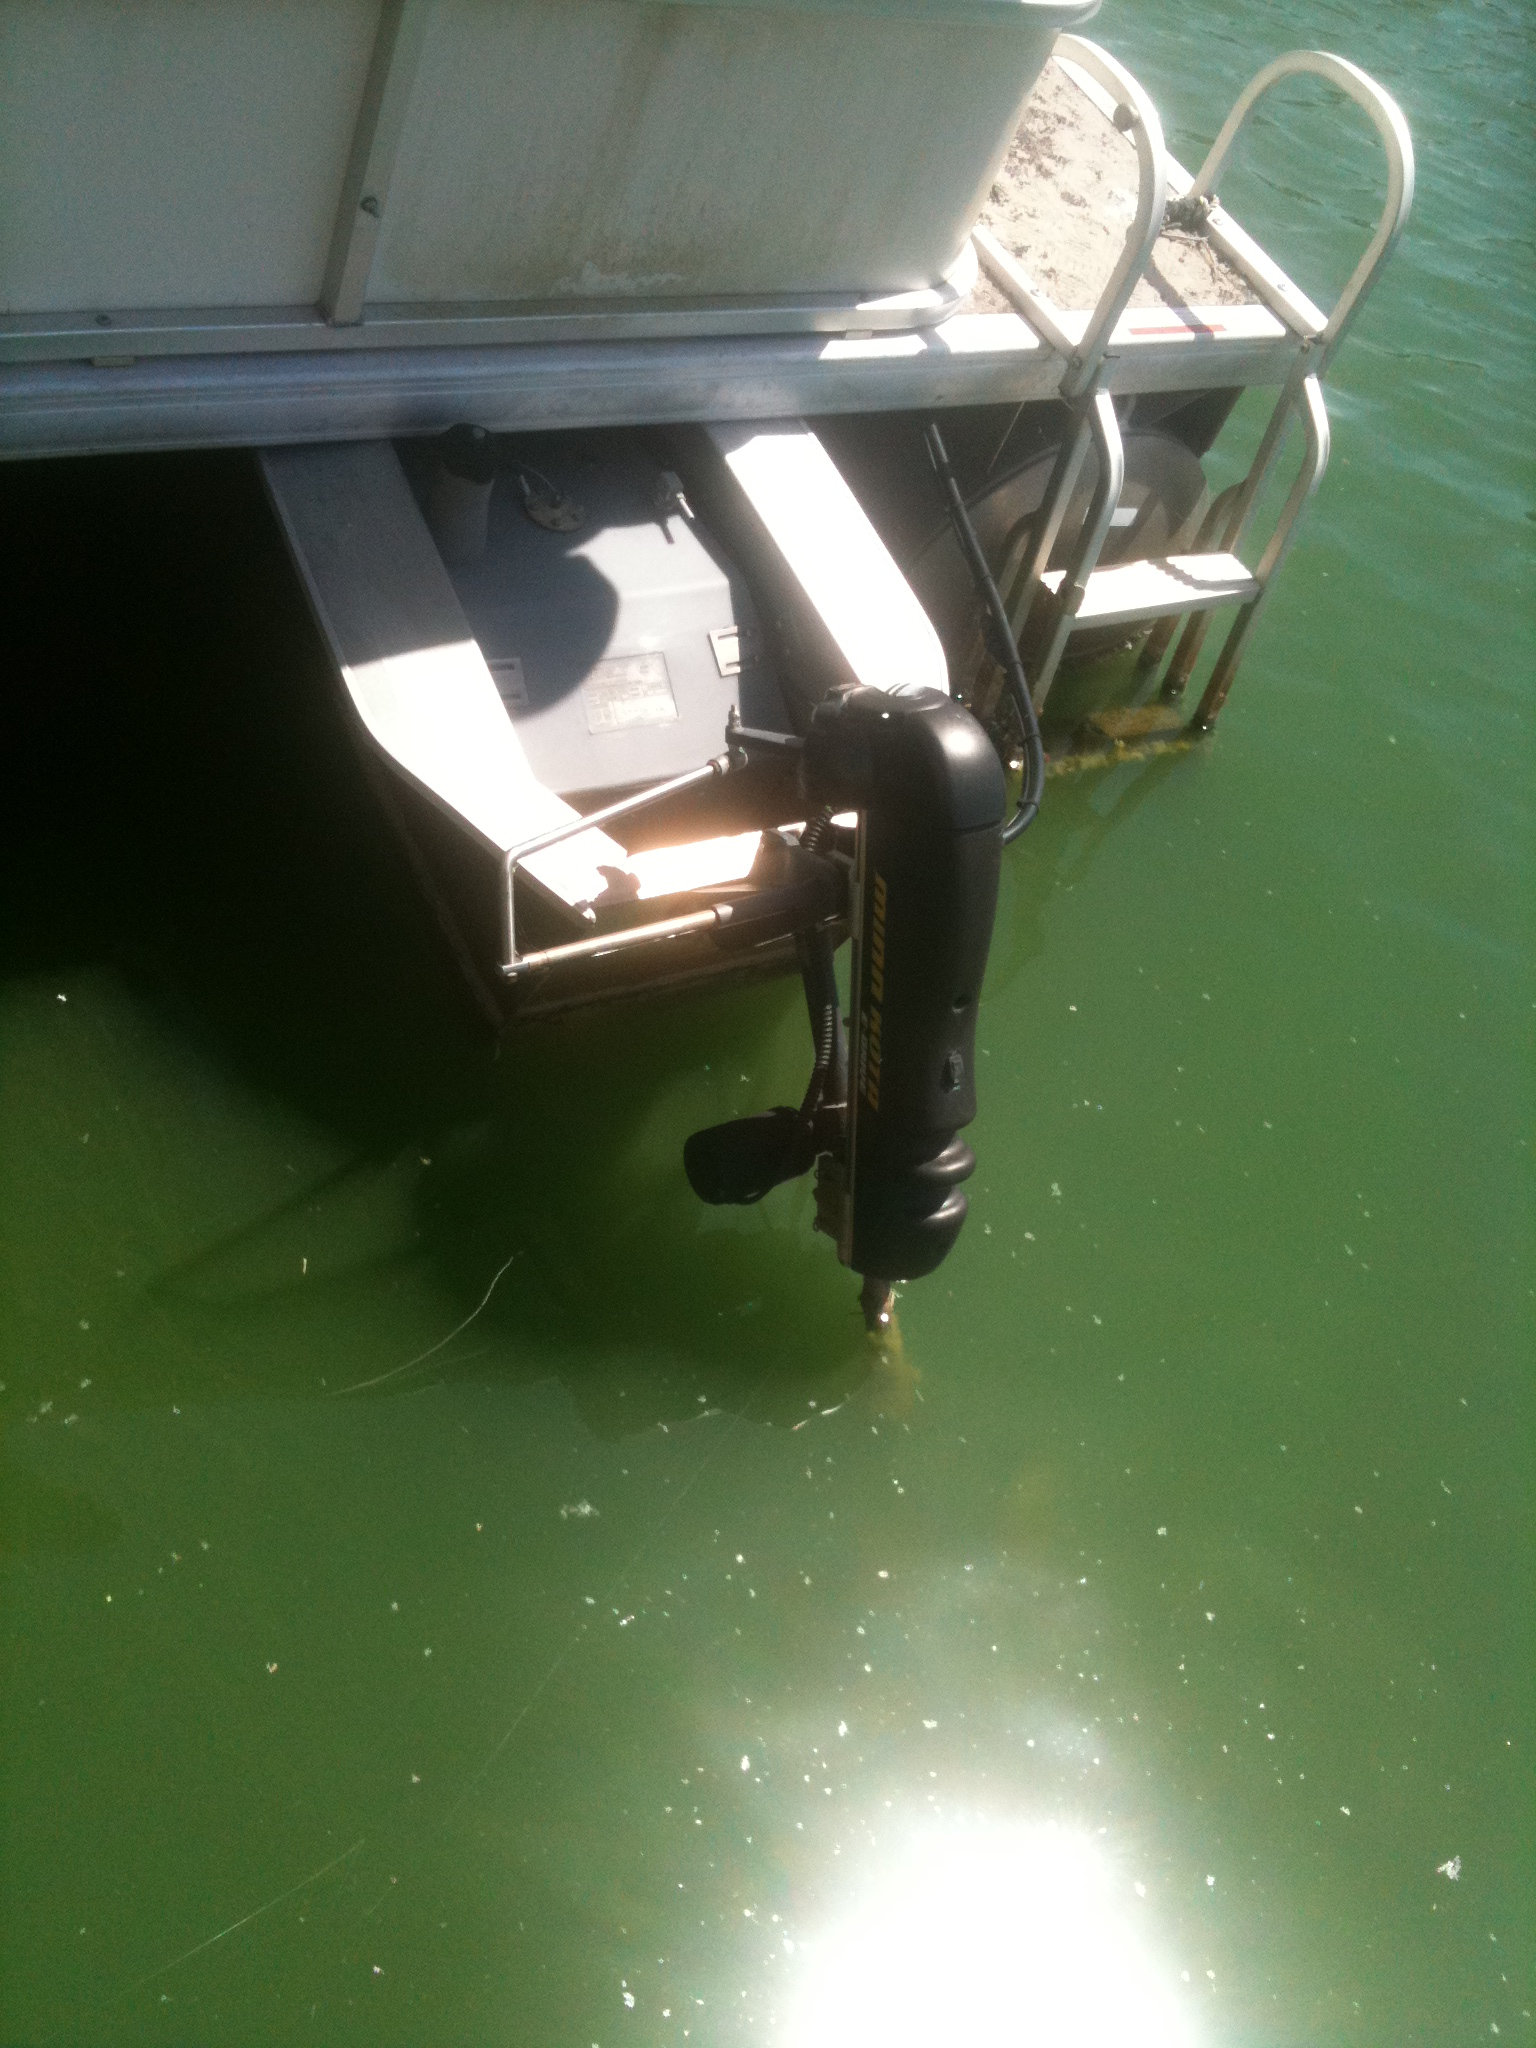 Can I Find A New Ignition Switch For A Pontoon   With A Minn Kato Battery Powered Motor   Or A